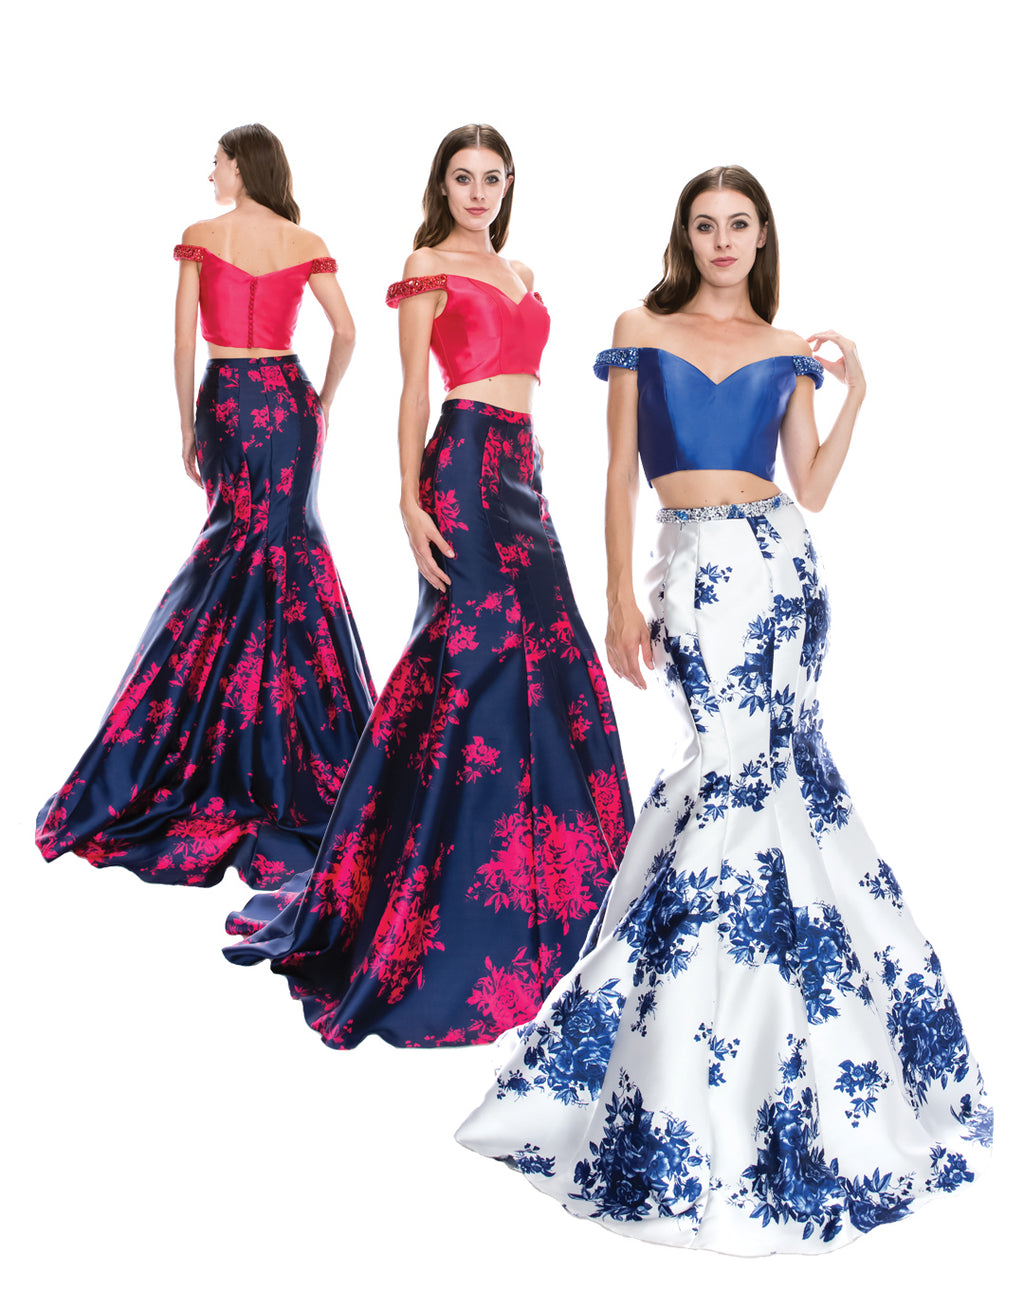 Sexy Off Shoulder Two Piece Floral Mermaid Dress | Norma Reed